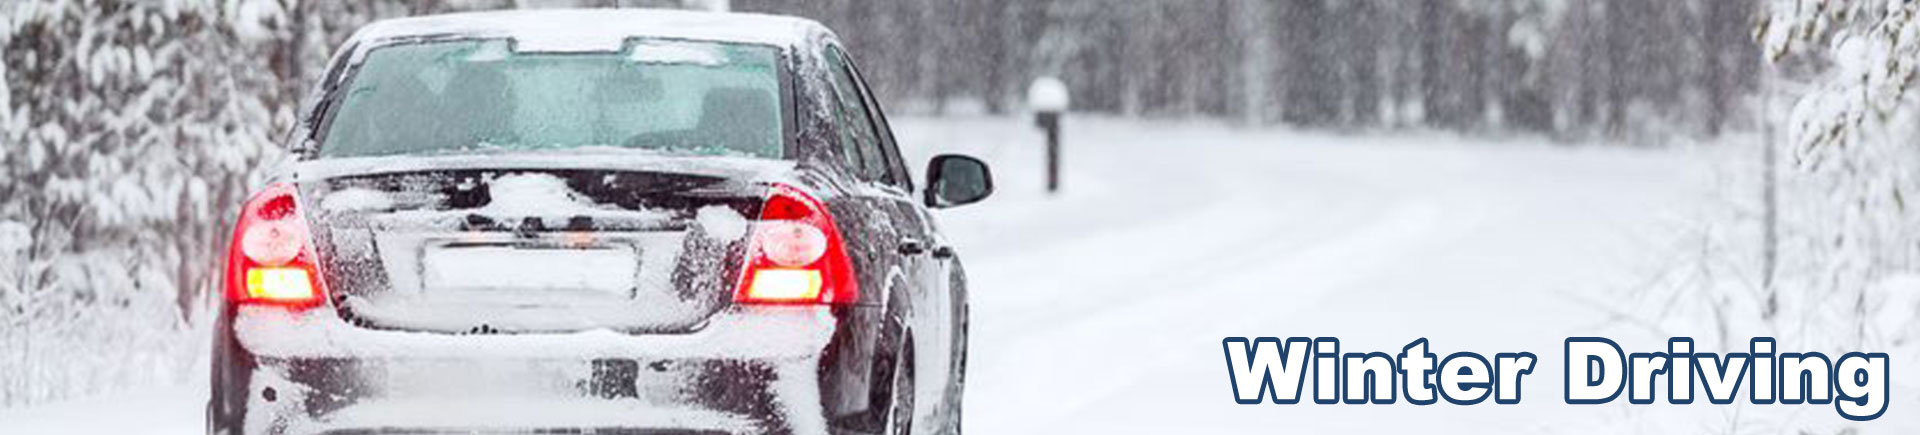 Lincoln County Emergency Management Winter Driving